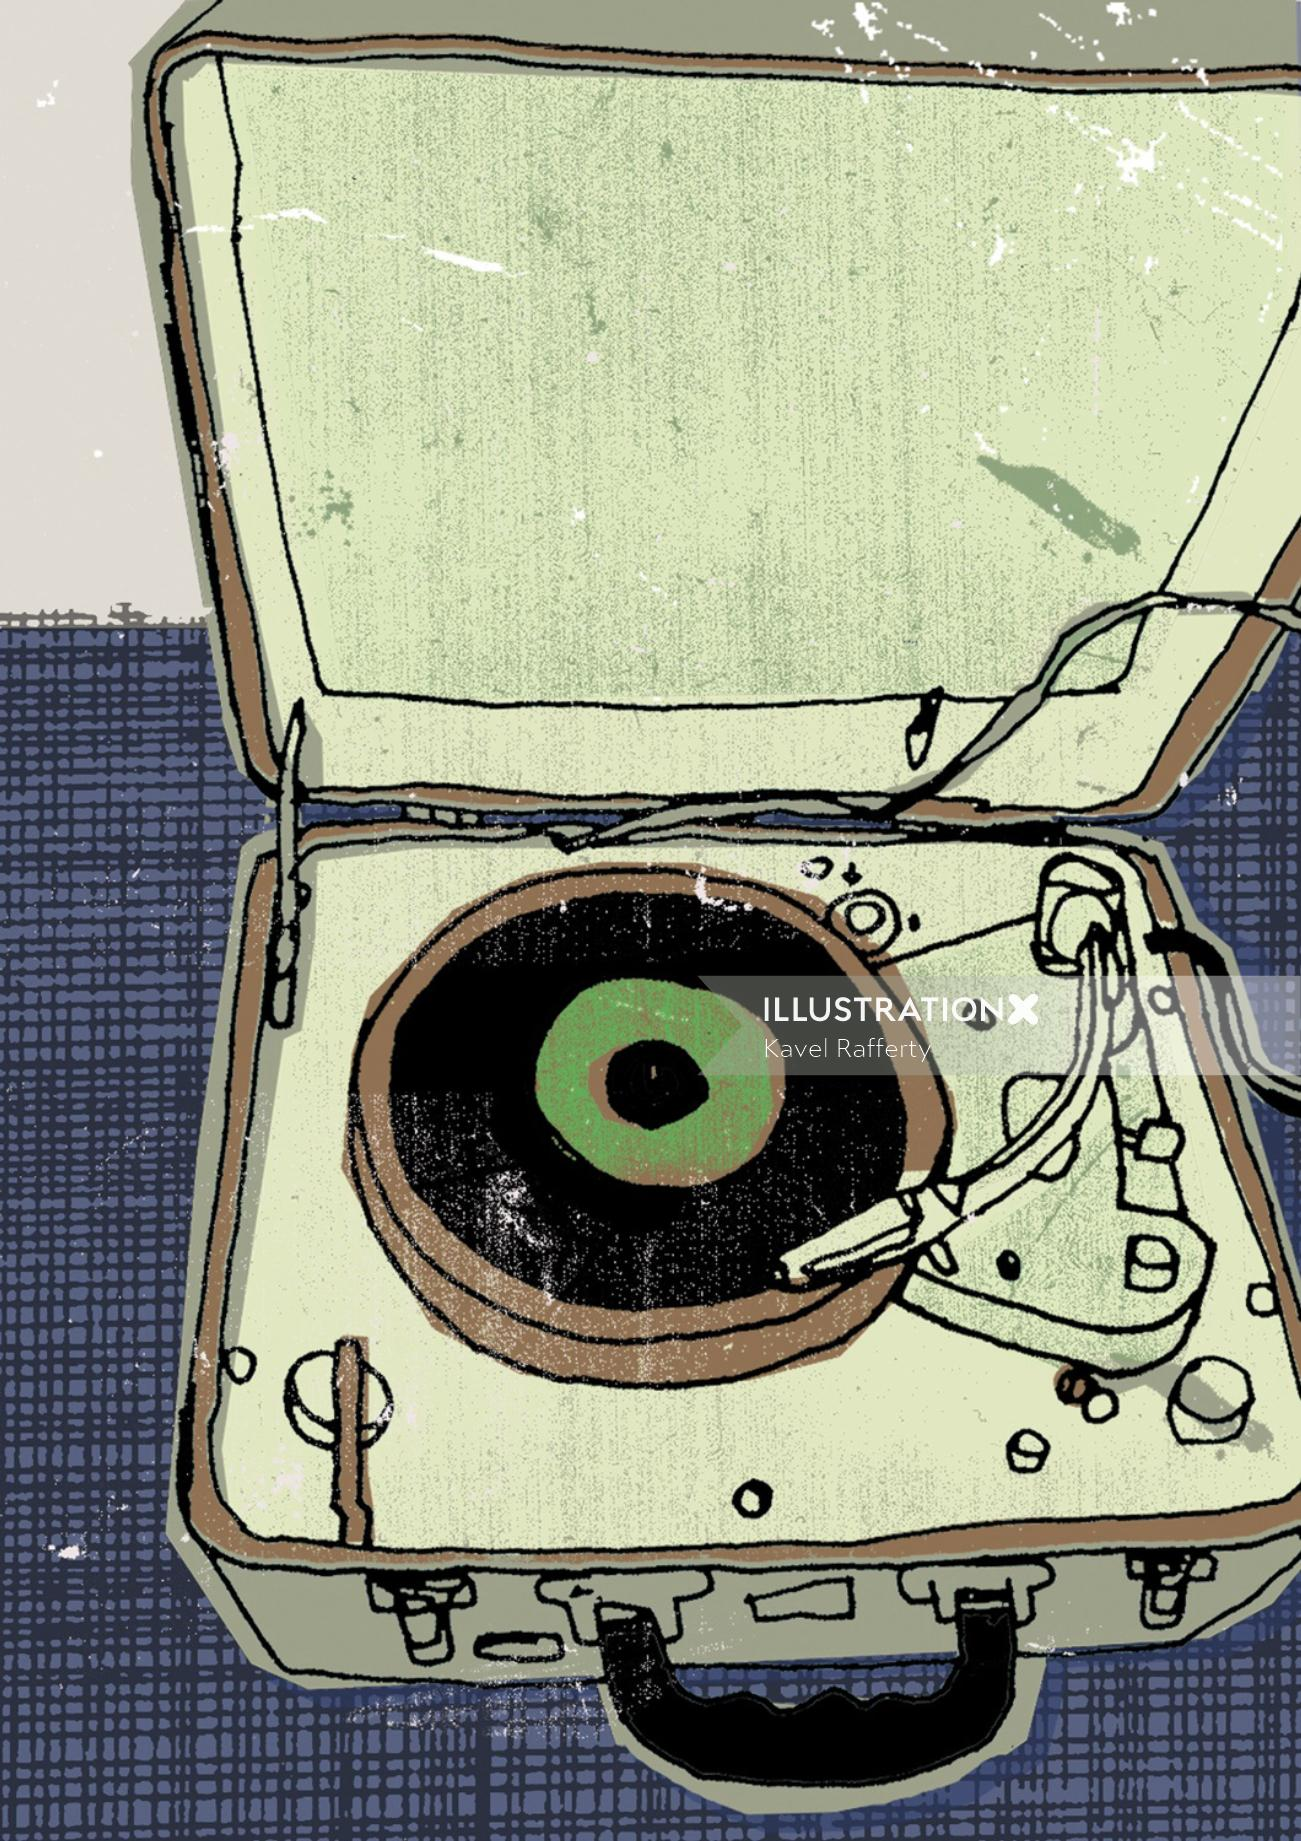 Illustration of vintage portable record player